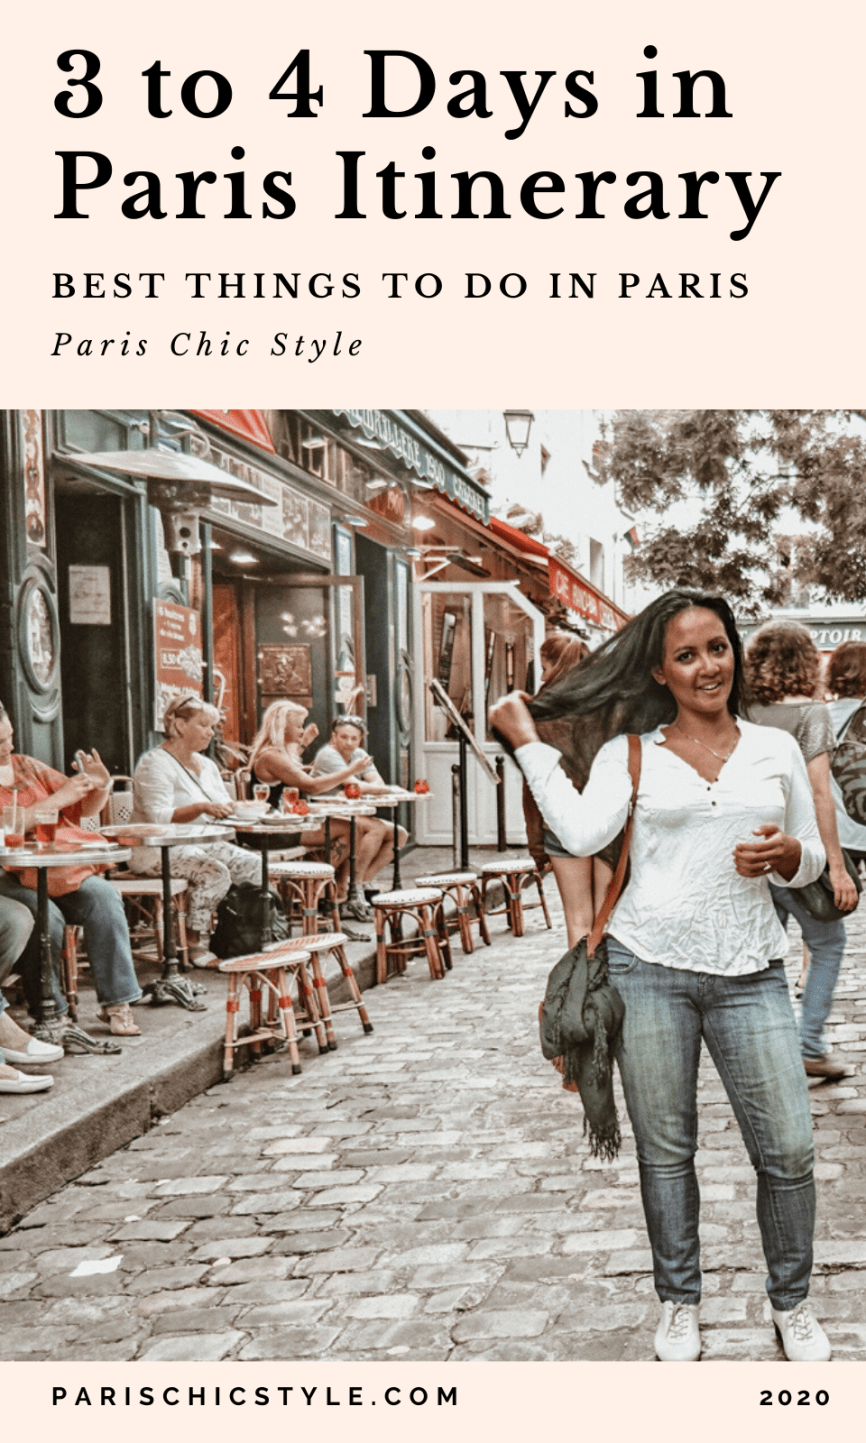 Marjolyn Lago Marj Paris Chic Style 3 to 4 days in Paris Itinerary travel guide